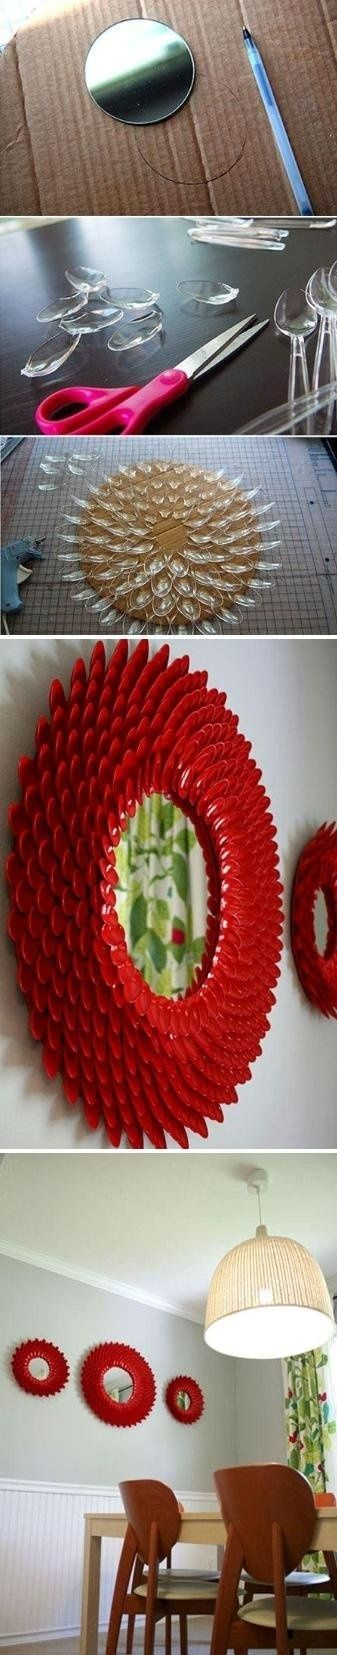 Make a Mirror from Plastic Spoon! This is stunning.